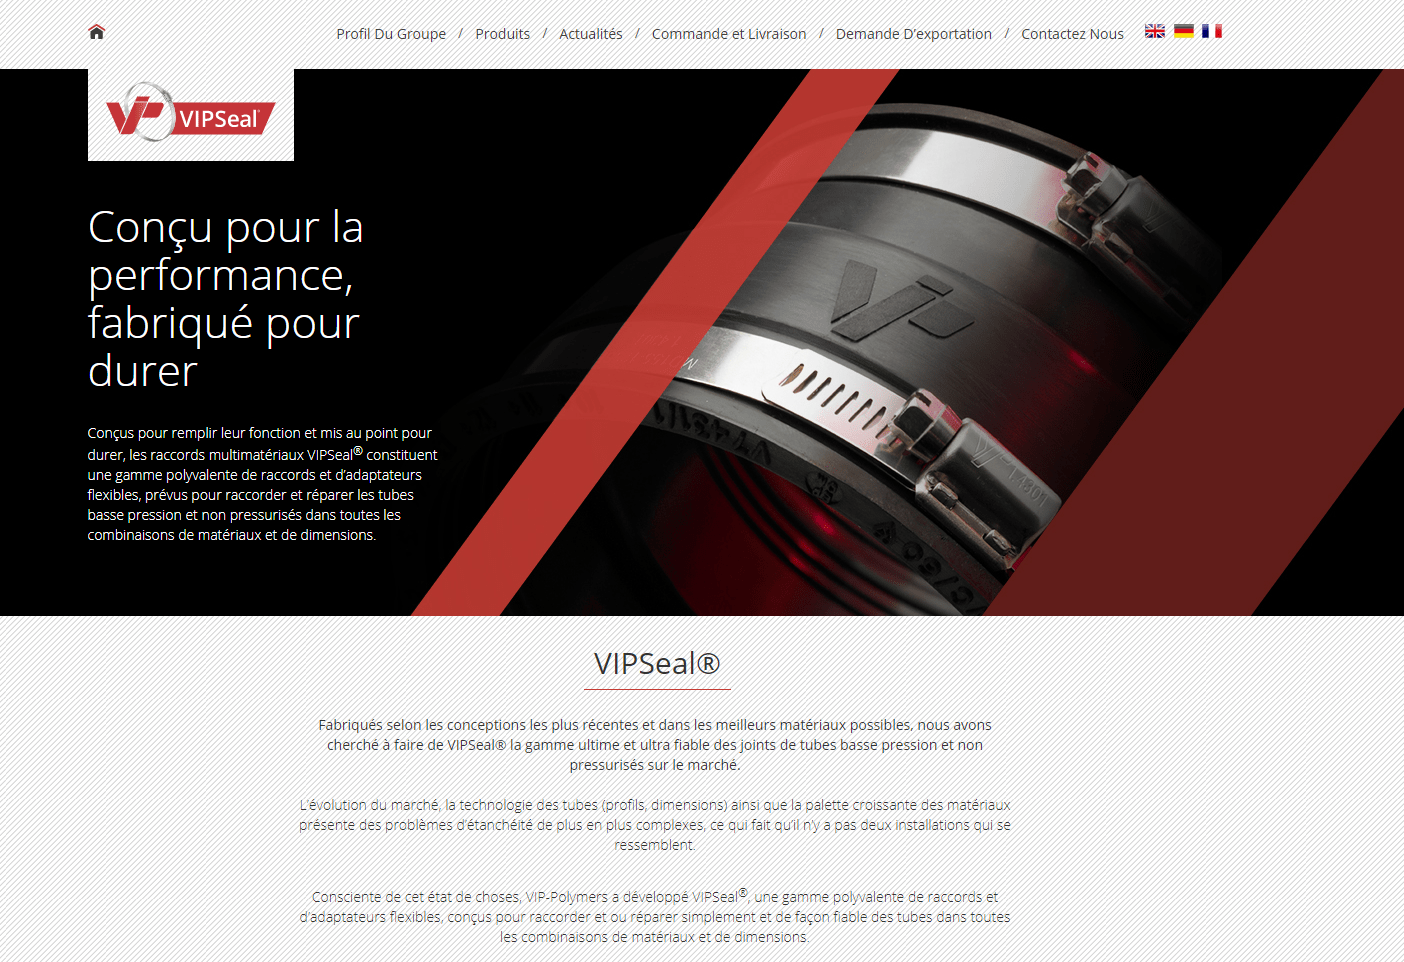 French VIPSeal website